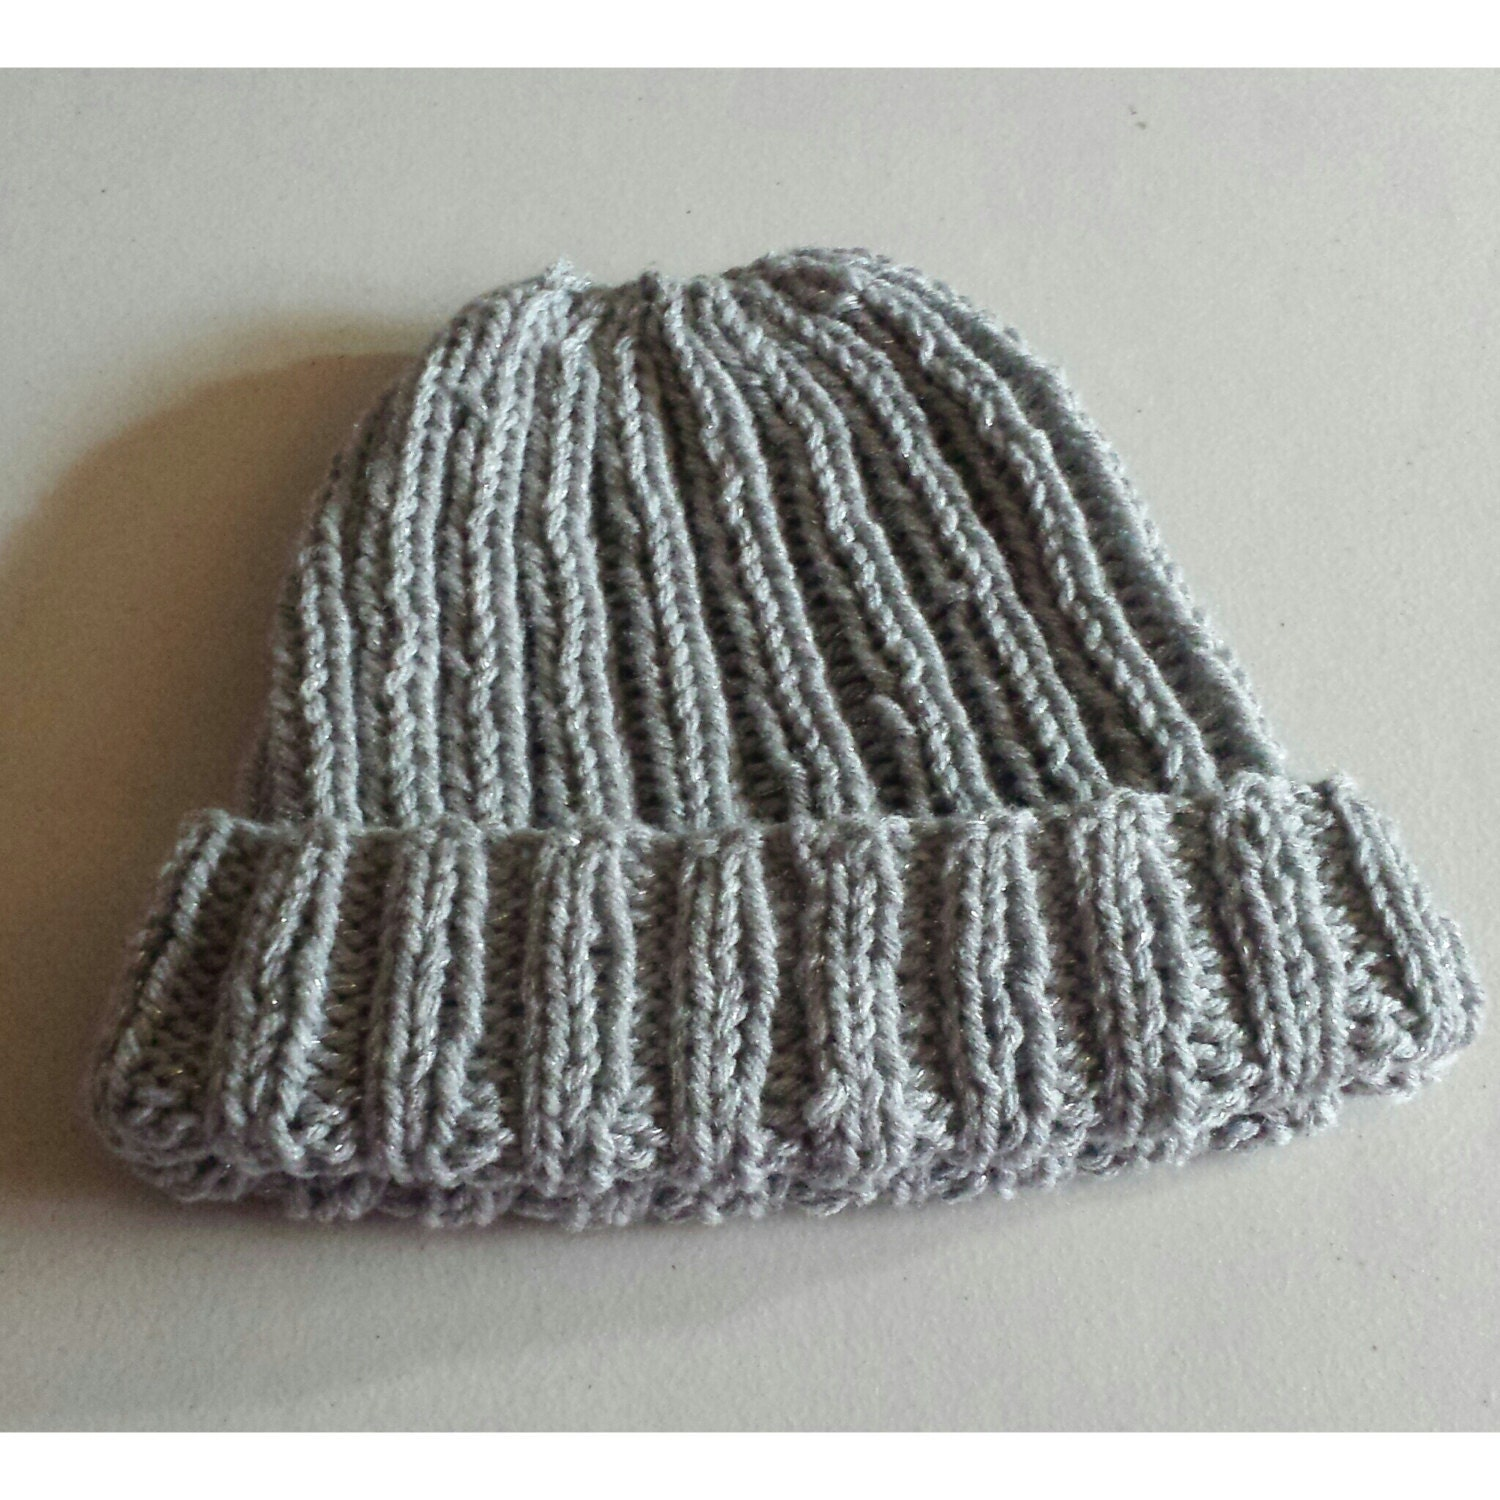 Knitted Watch Cap Pattern : Items similar to Knit Watch Cap -Adult Female Sized -Rib Pattern -Silver Gray...